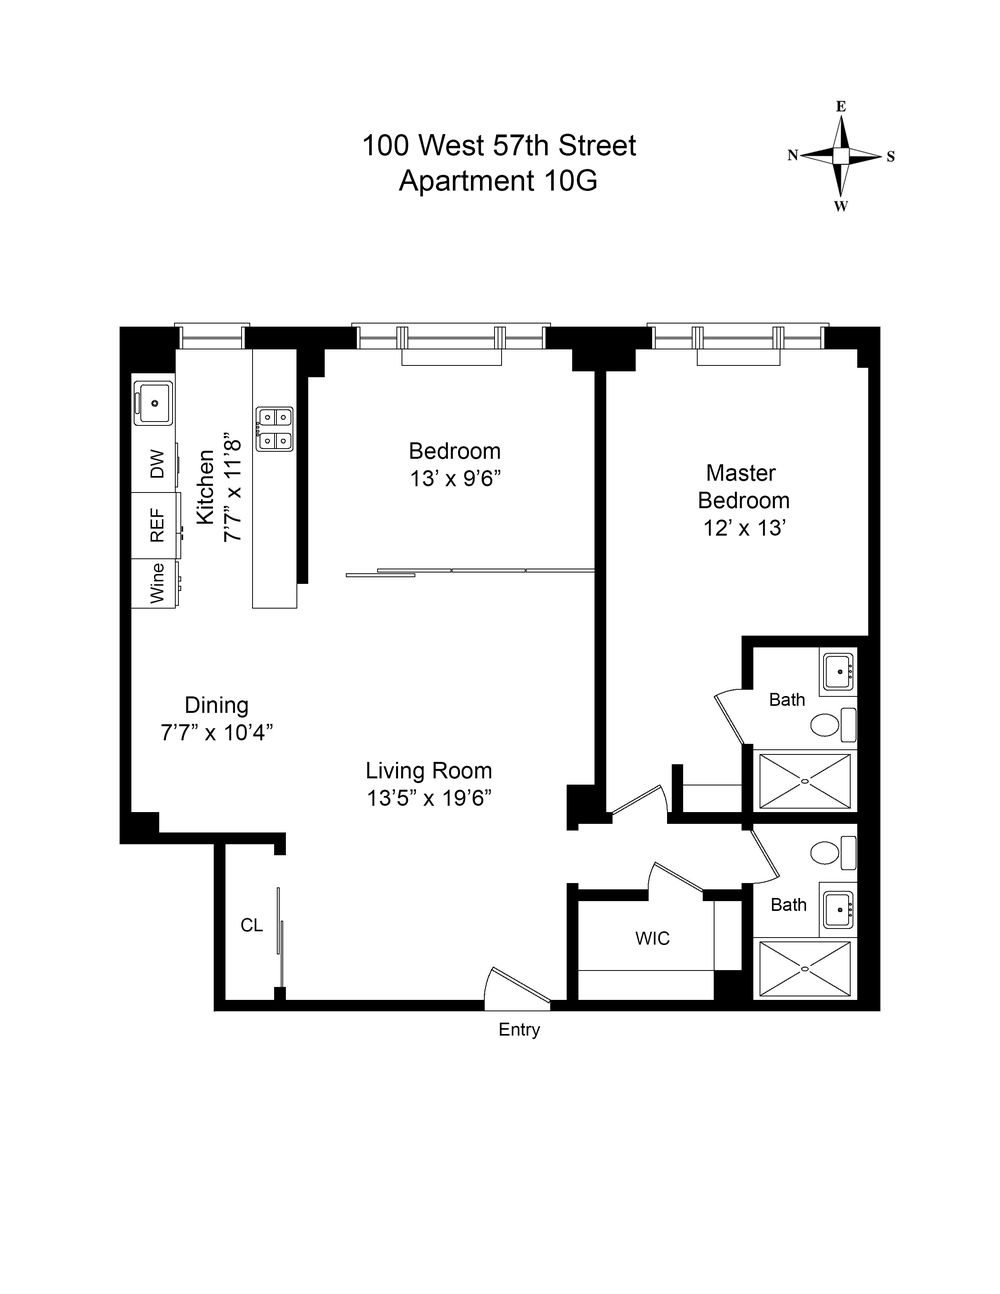 Floor Plan - 100 West 57th Street 10G.jpg